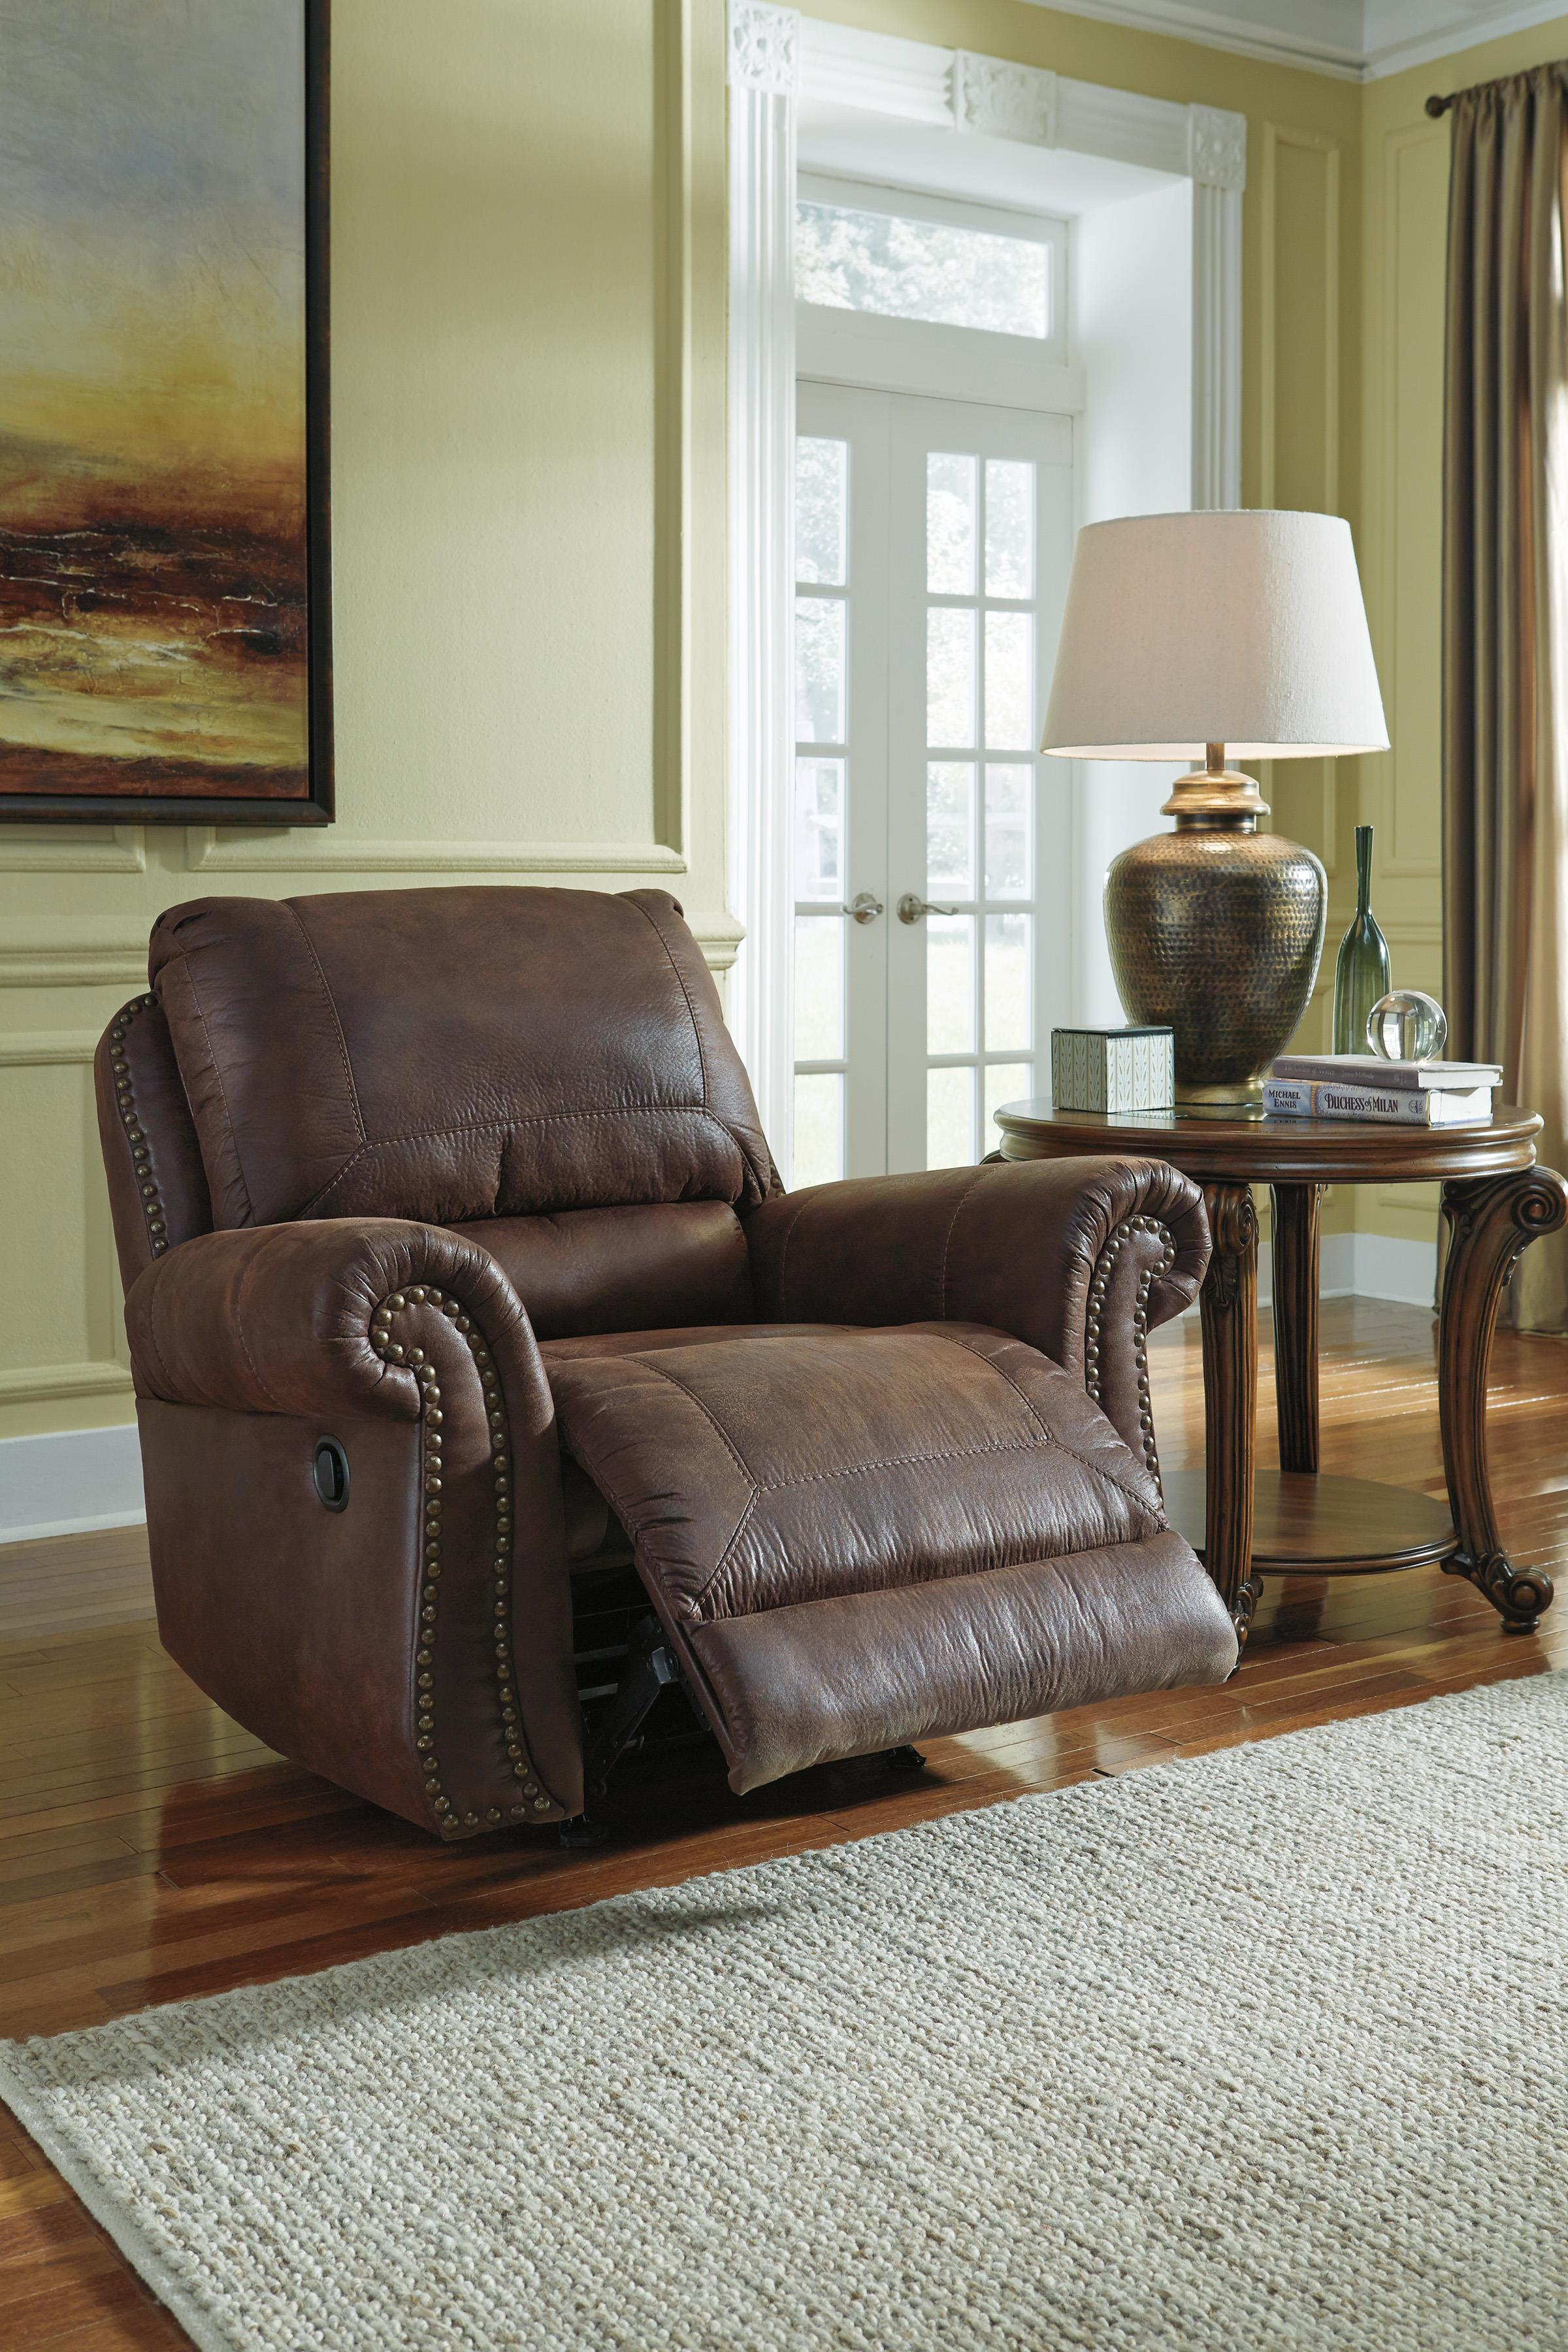 Benchcraft Breville Faux Leather Rocker Recliner With